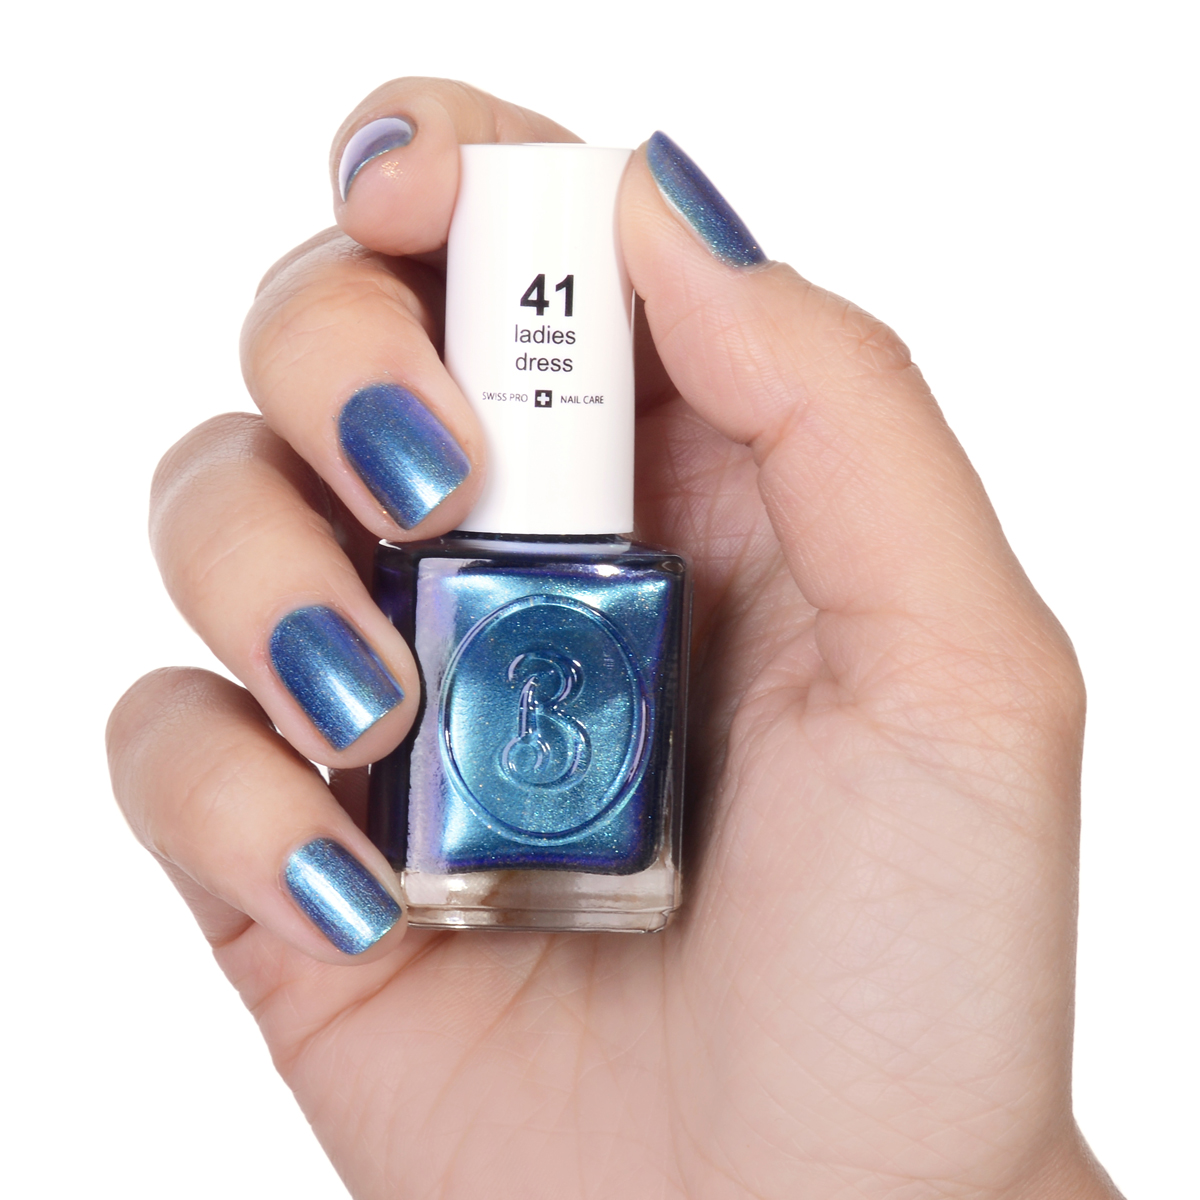 Berenice Oxygen Nail Polish / 41 ladies dress